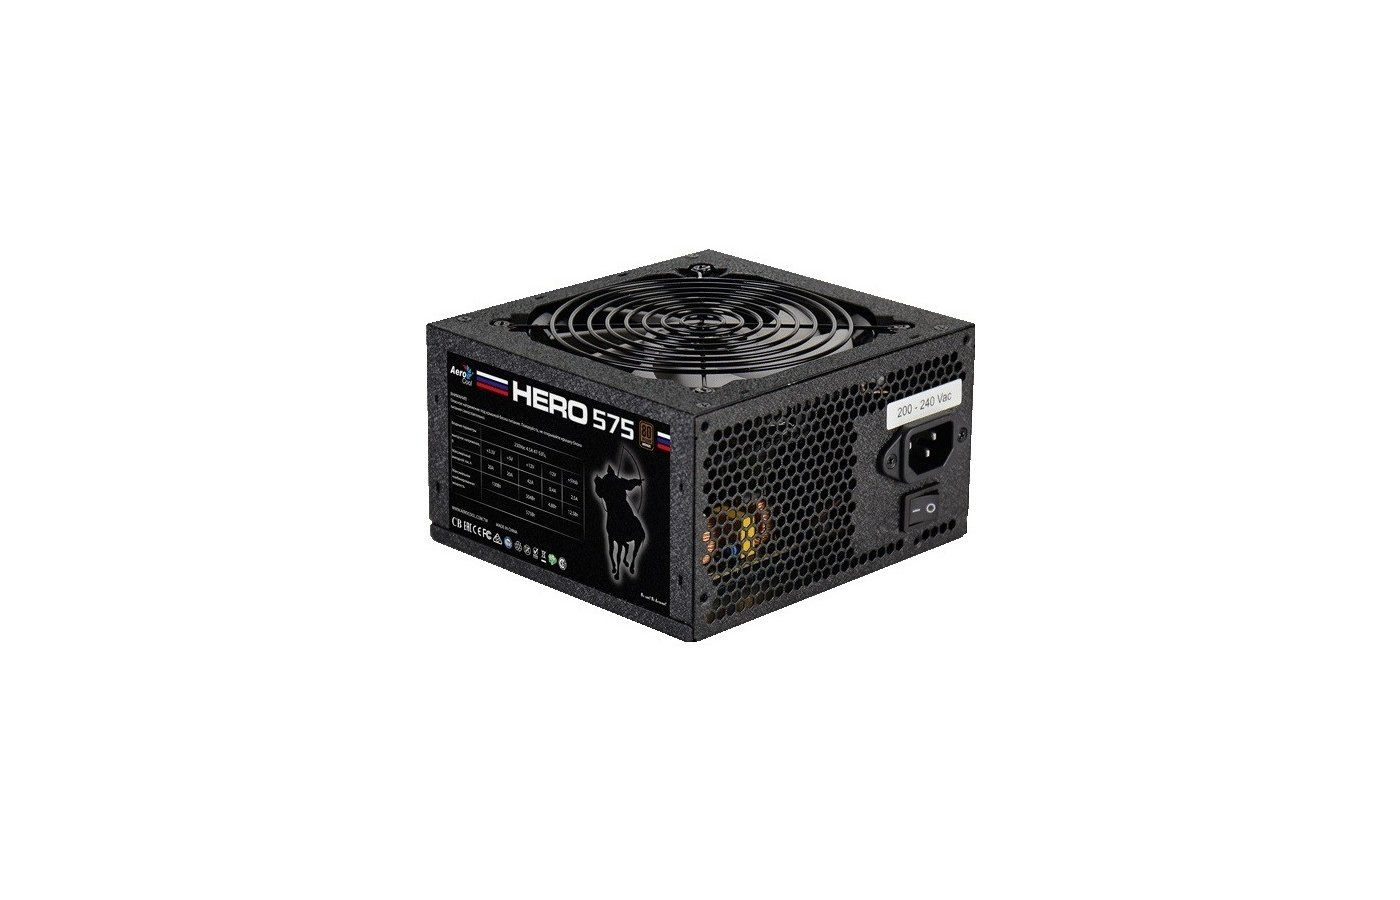 Блок питания Aerocool ATX 550W Hero 575 80+ bronze (24+4+4pin) APFC 120mm fan white LED 5xSATA RTL